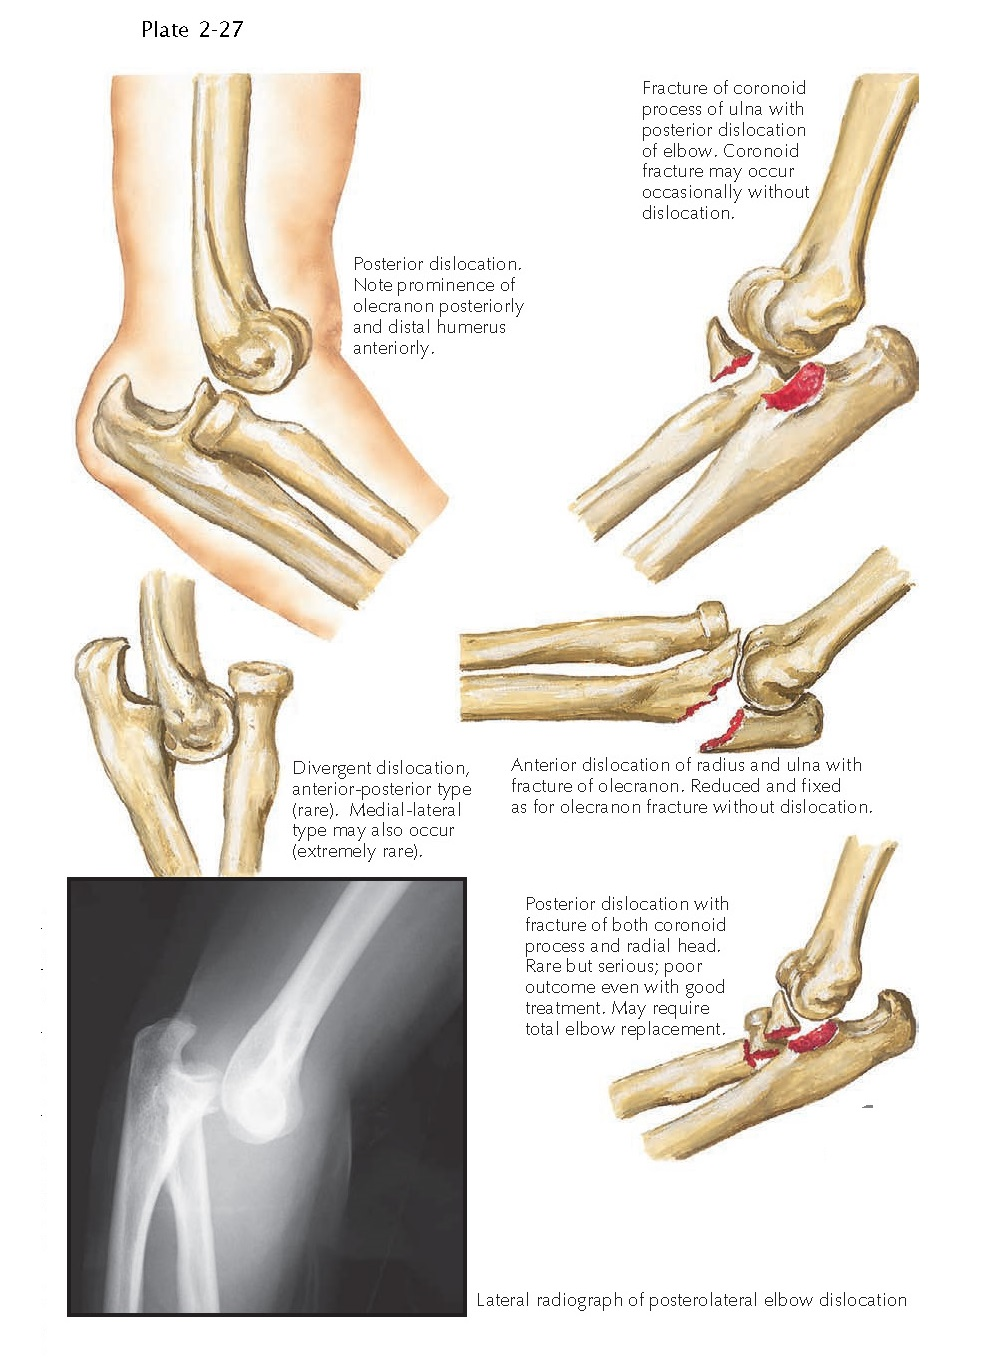 DISLOCATION OF ELBOW JOINT